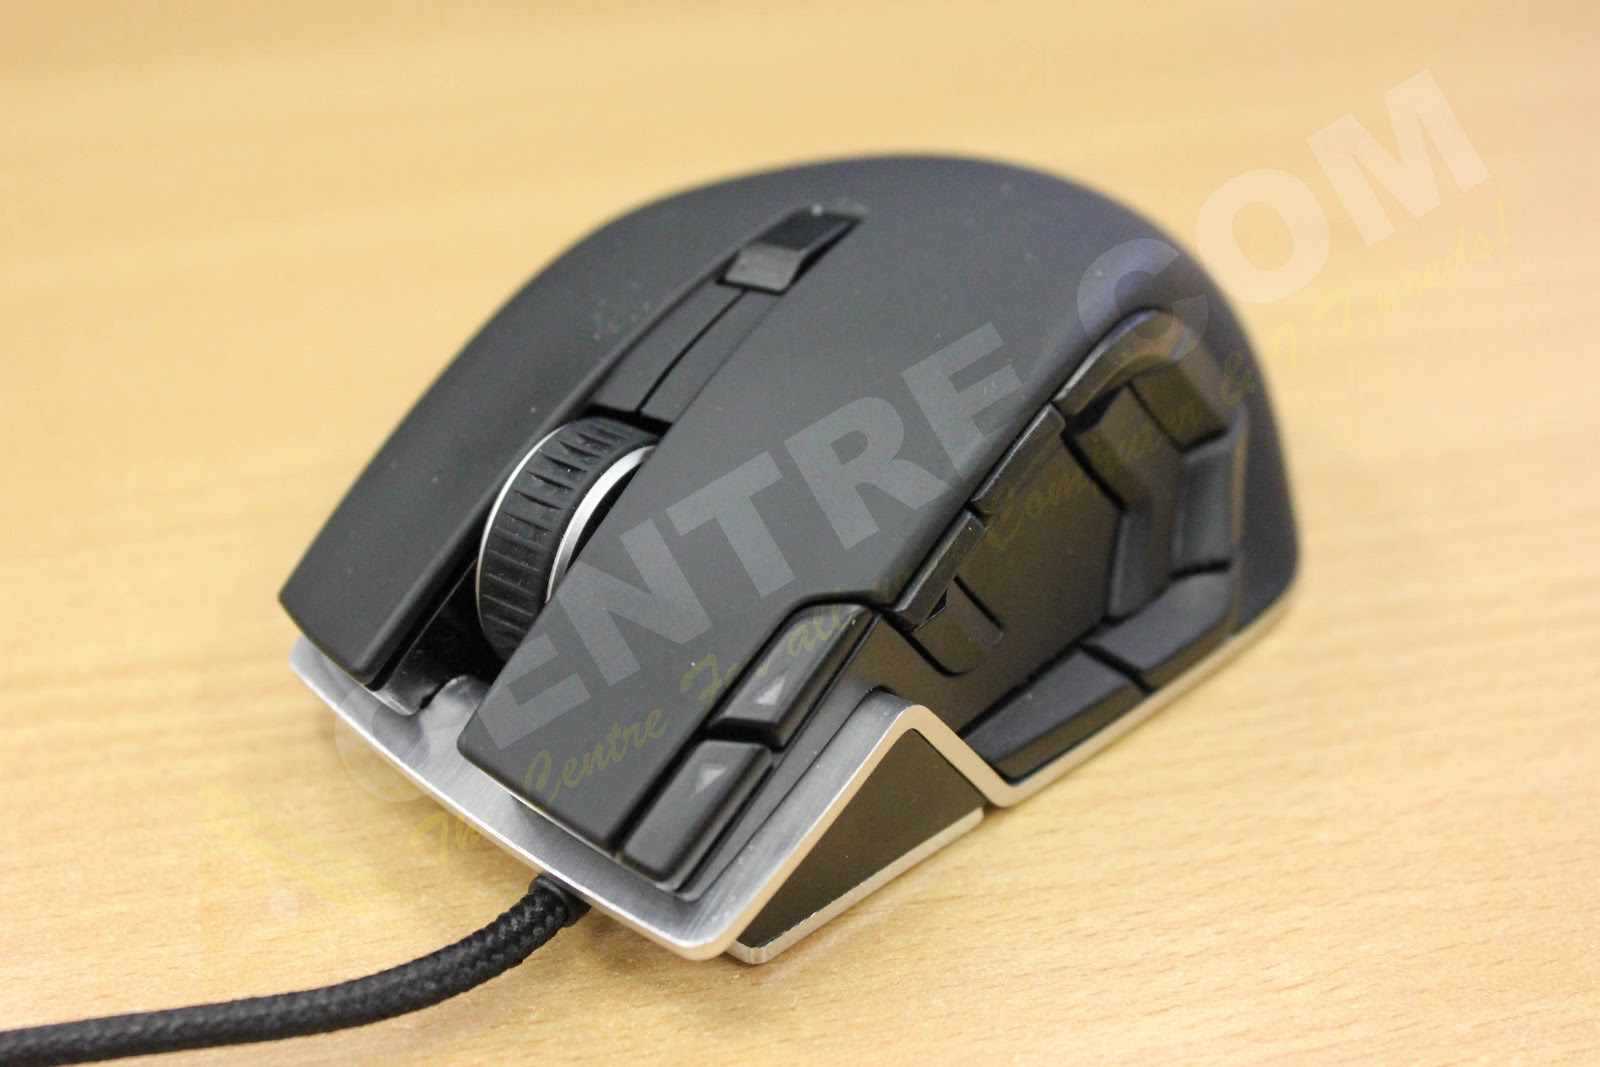 Keyboard overview of the Corsair Vengeance K60 and M60 mouse